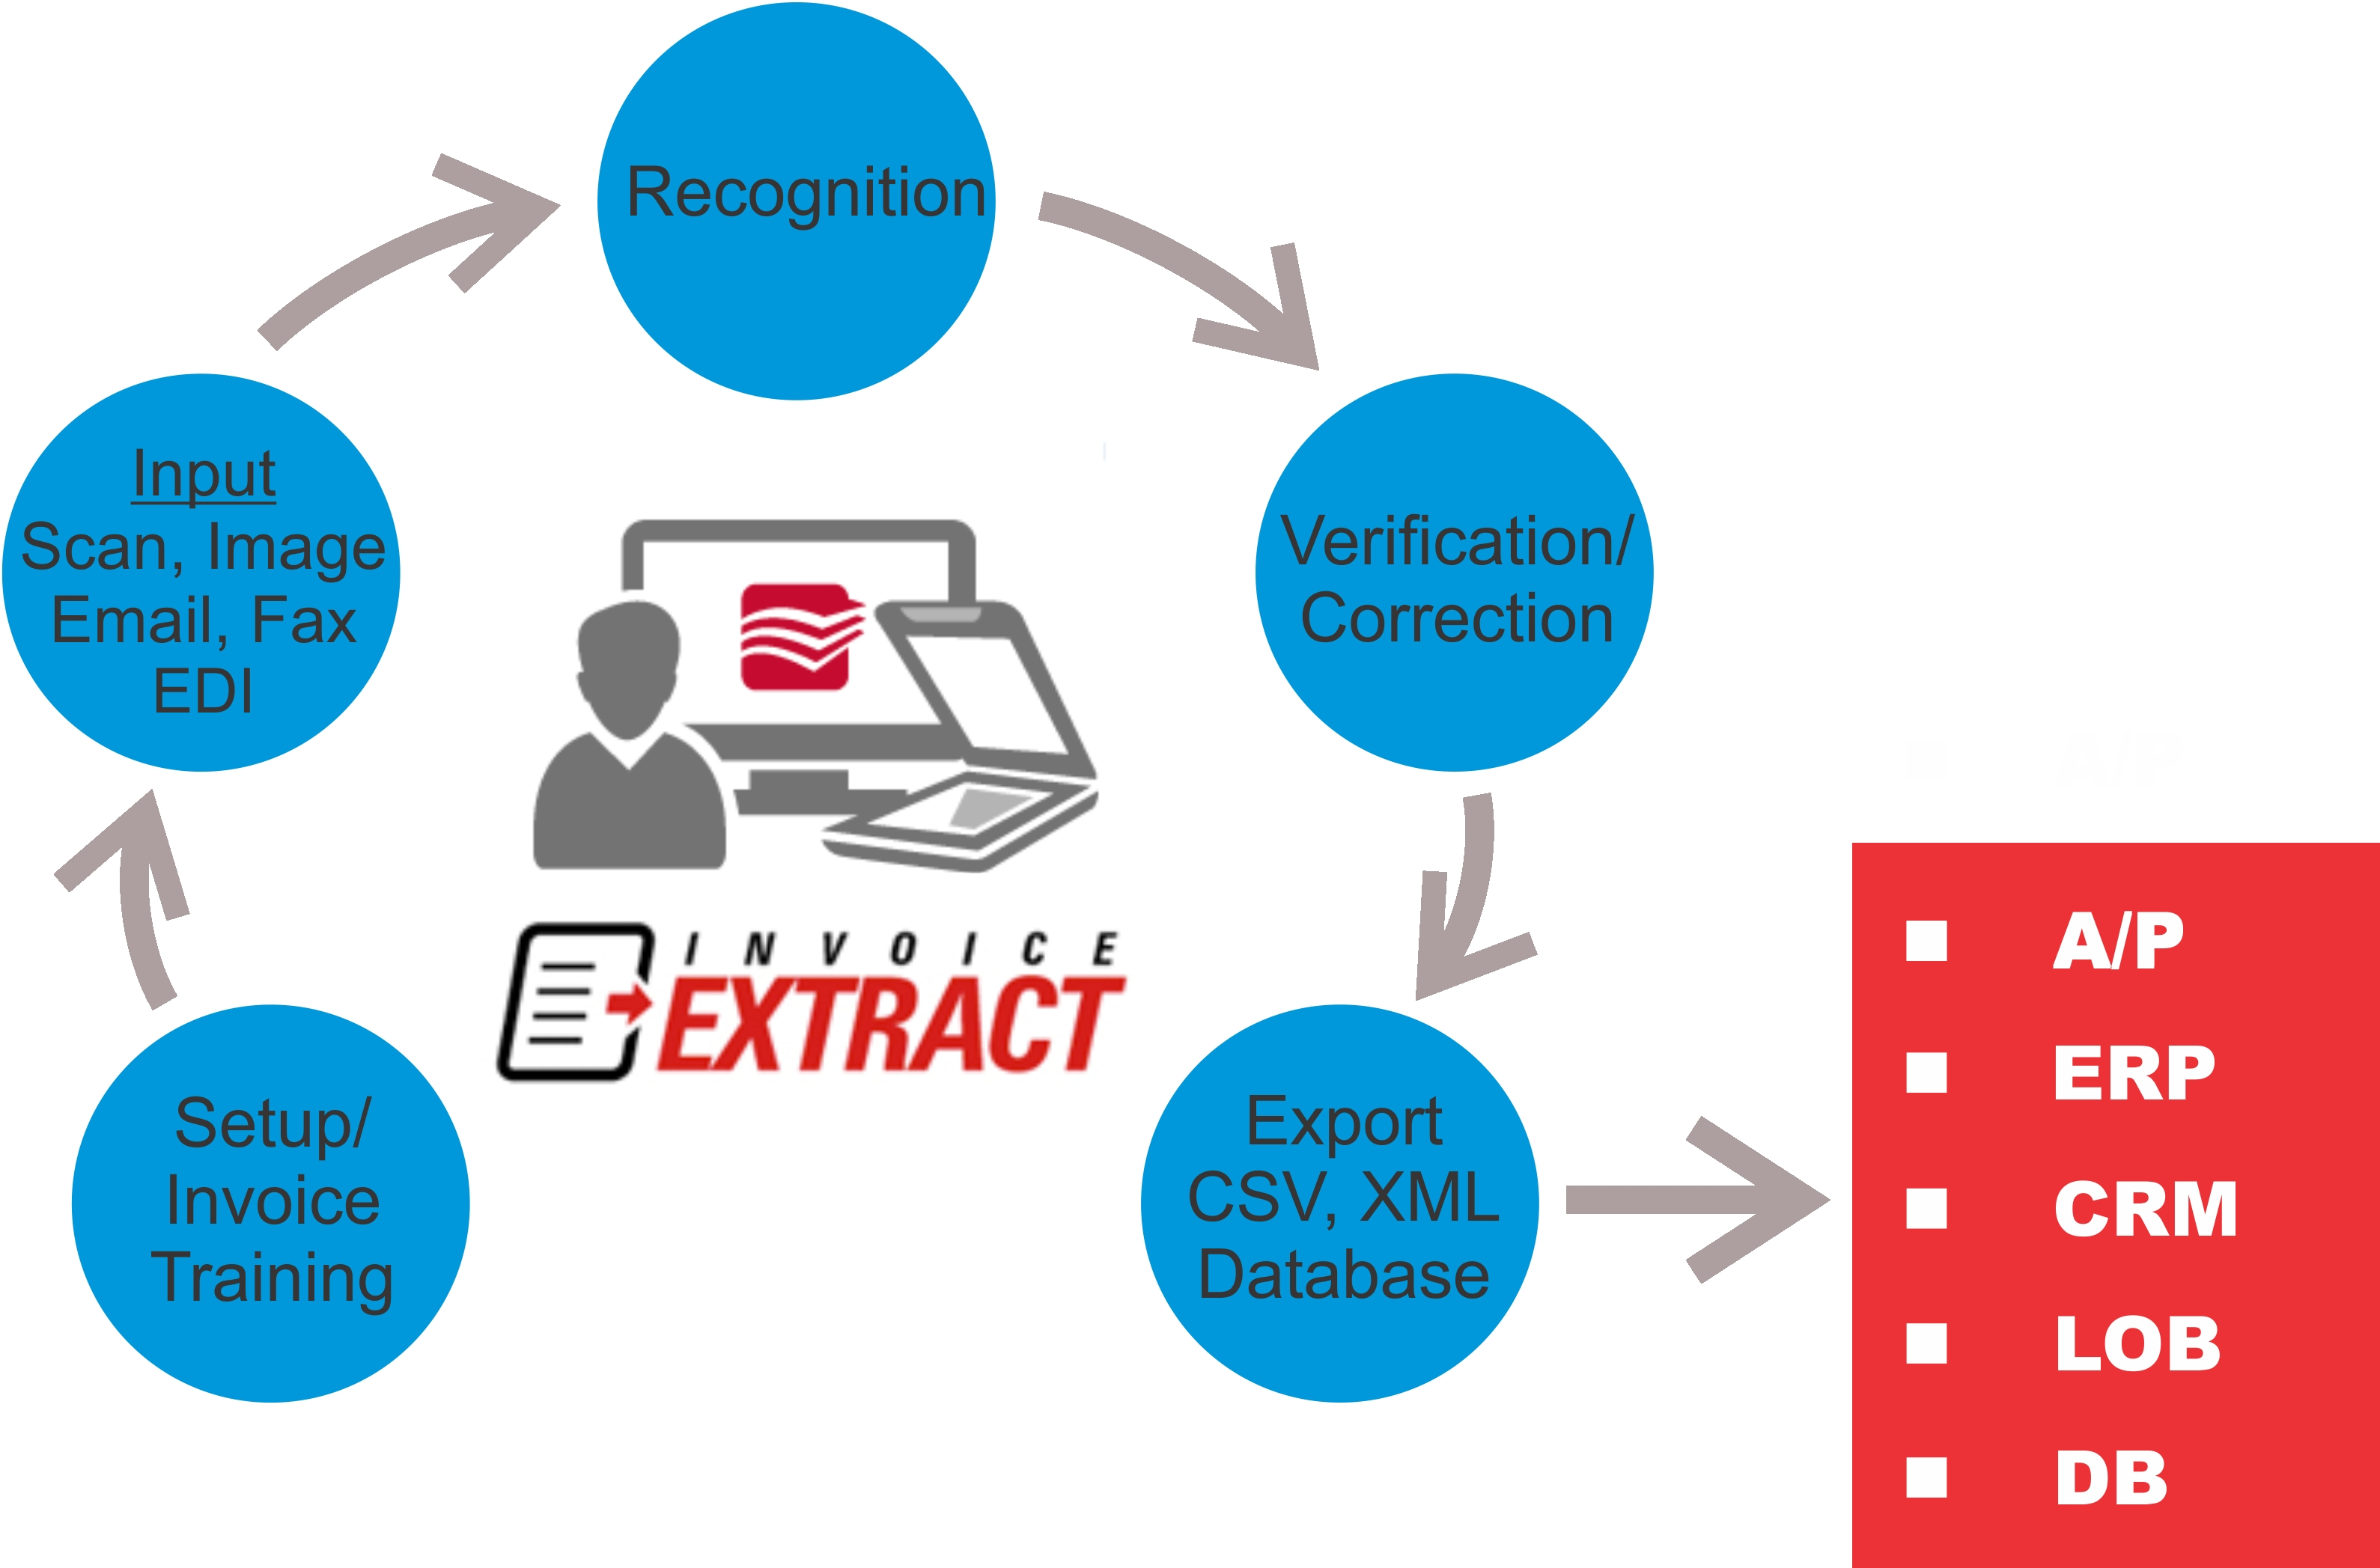 ocr invoice processing service vancouver electronic data capture invoice processing automation